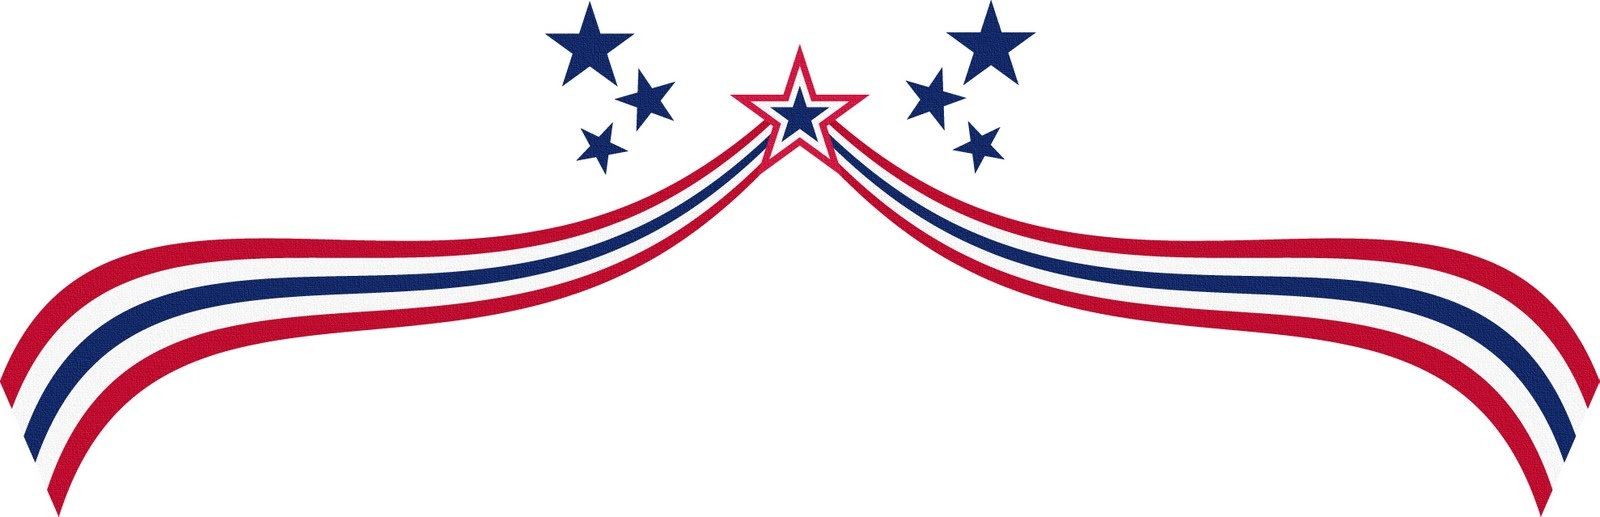 1600x517 free flag day clipart border